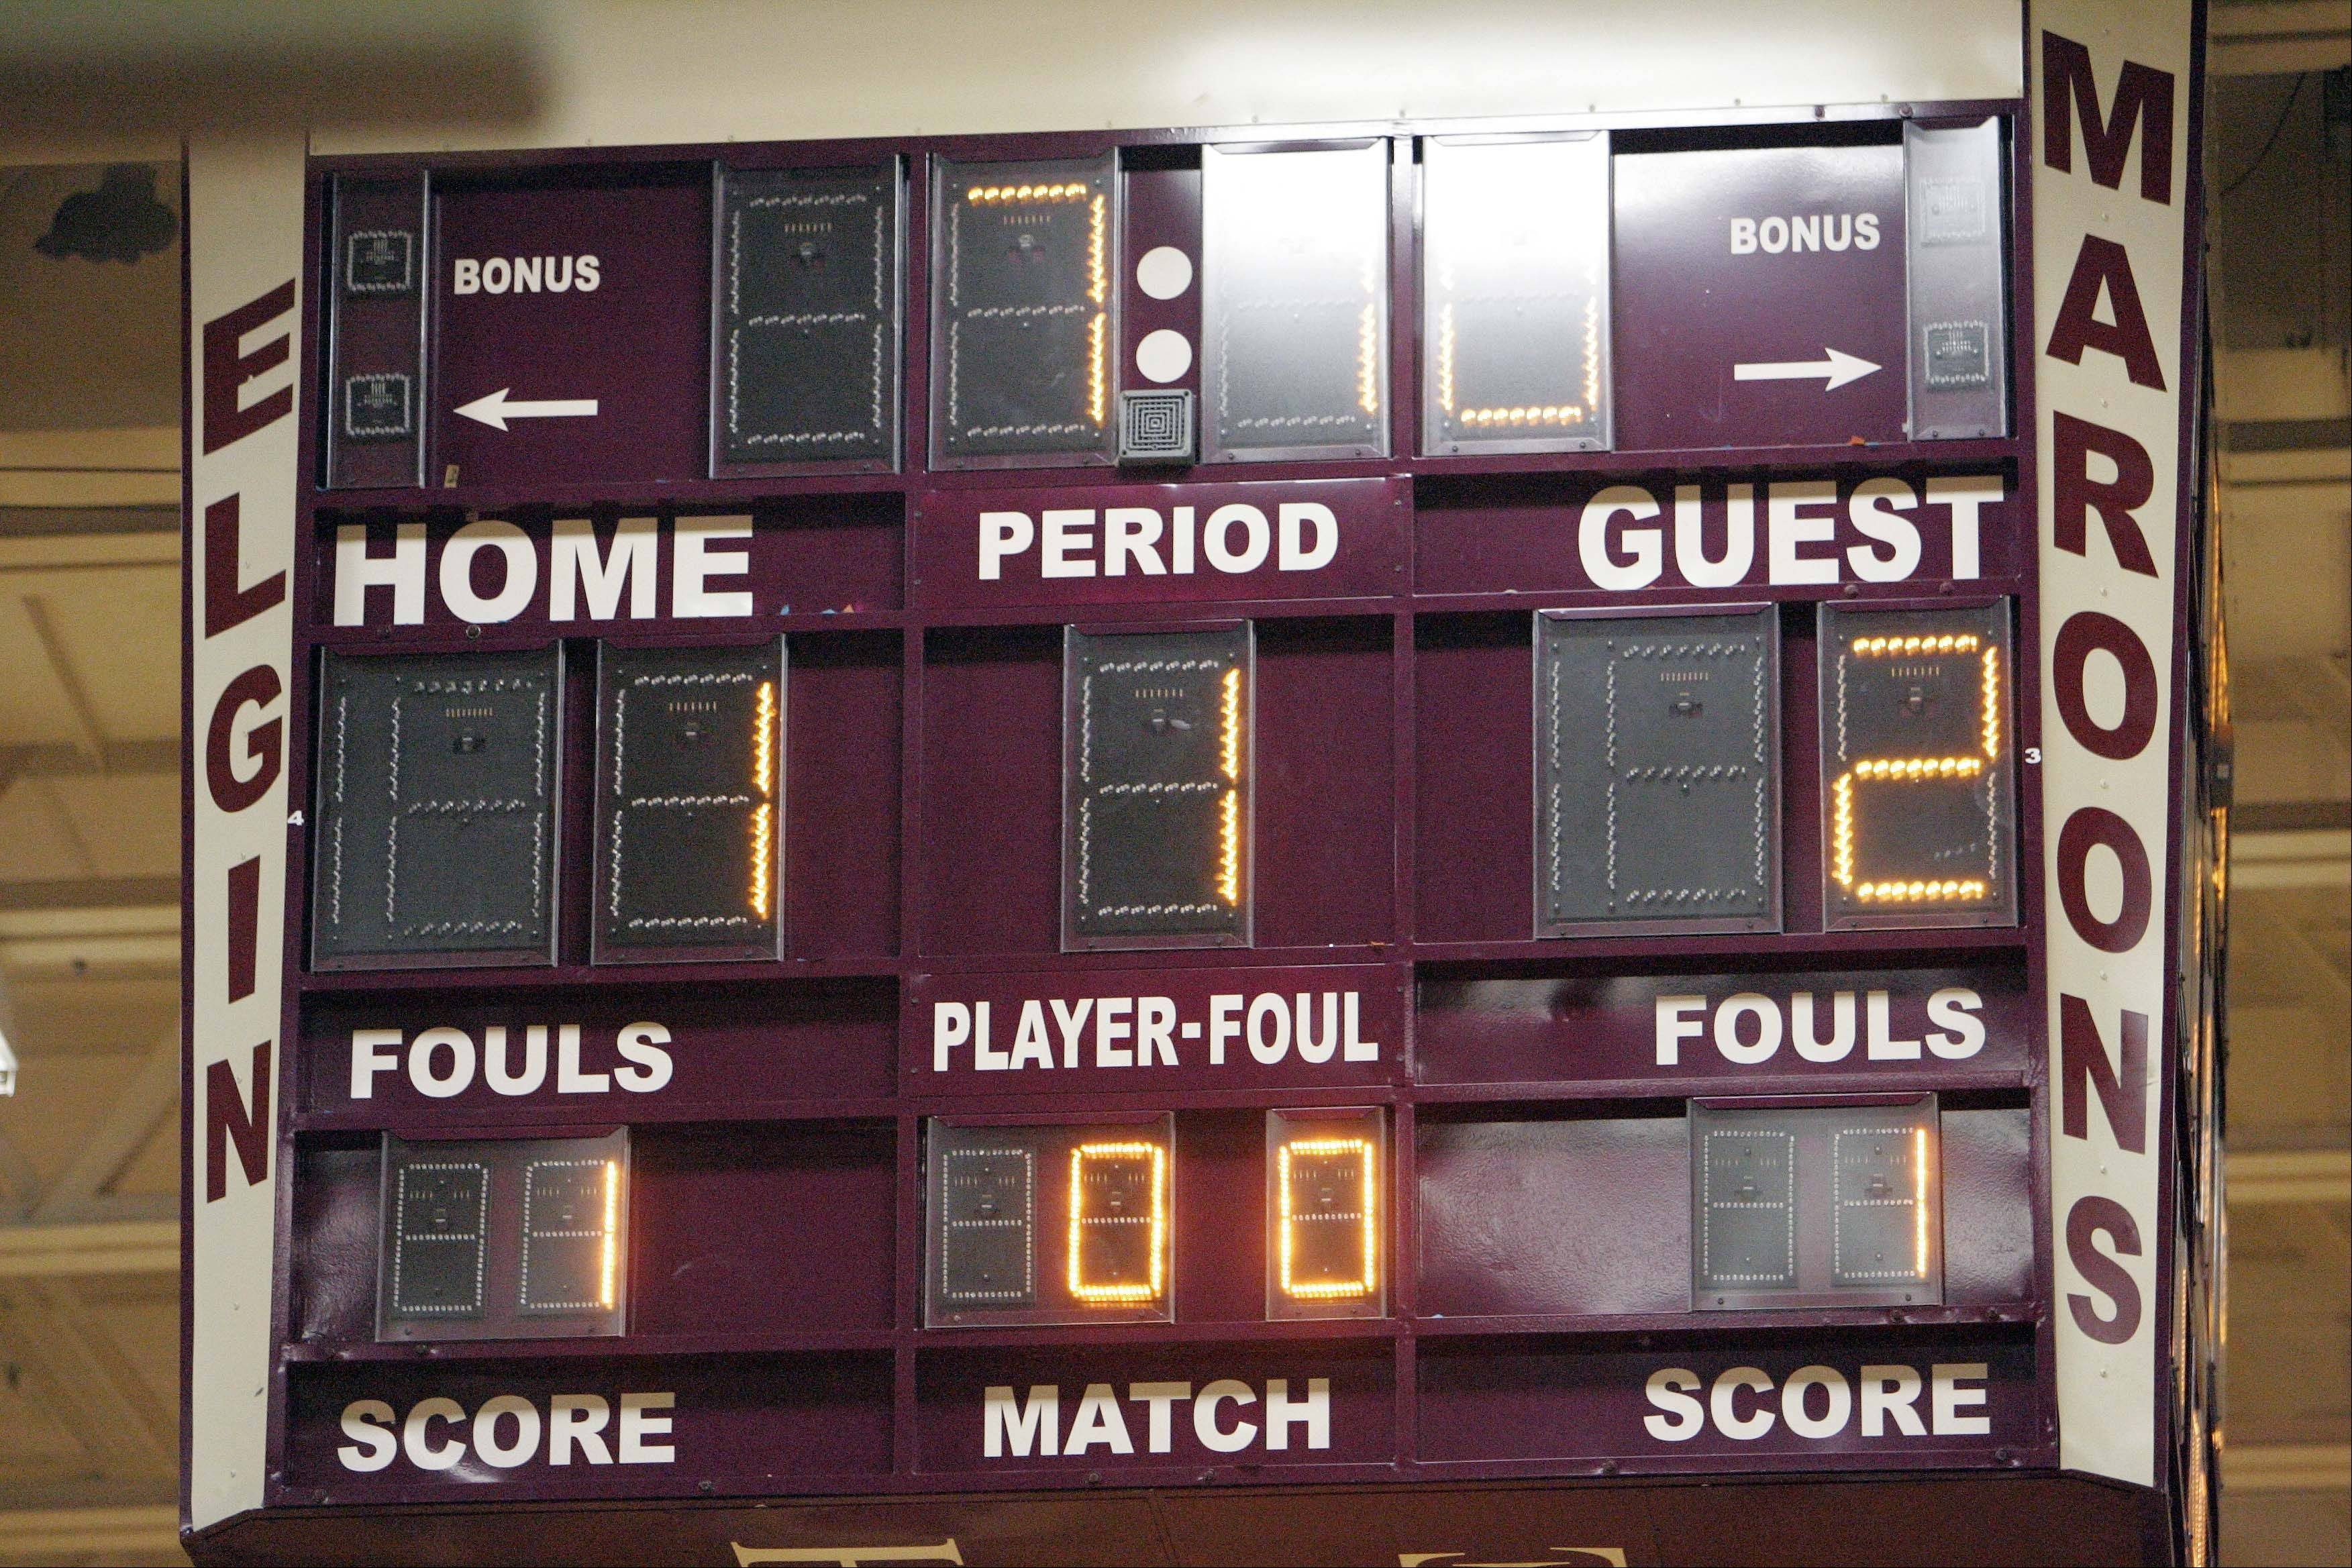 The score board showing Elgin wing Arie Williams (10) push over 1000 points in the Elgin vs Dundee-Crown game at the 38th Annual Elgin Boys Holiday Basketball Tournament Thursday December 27, 2012.